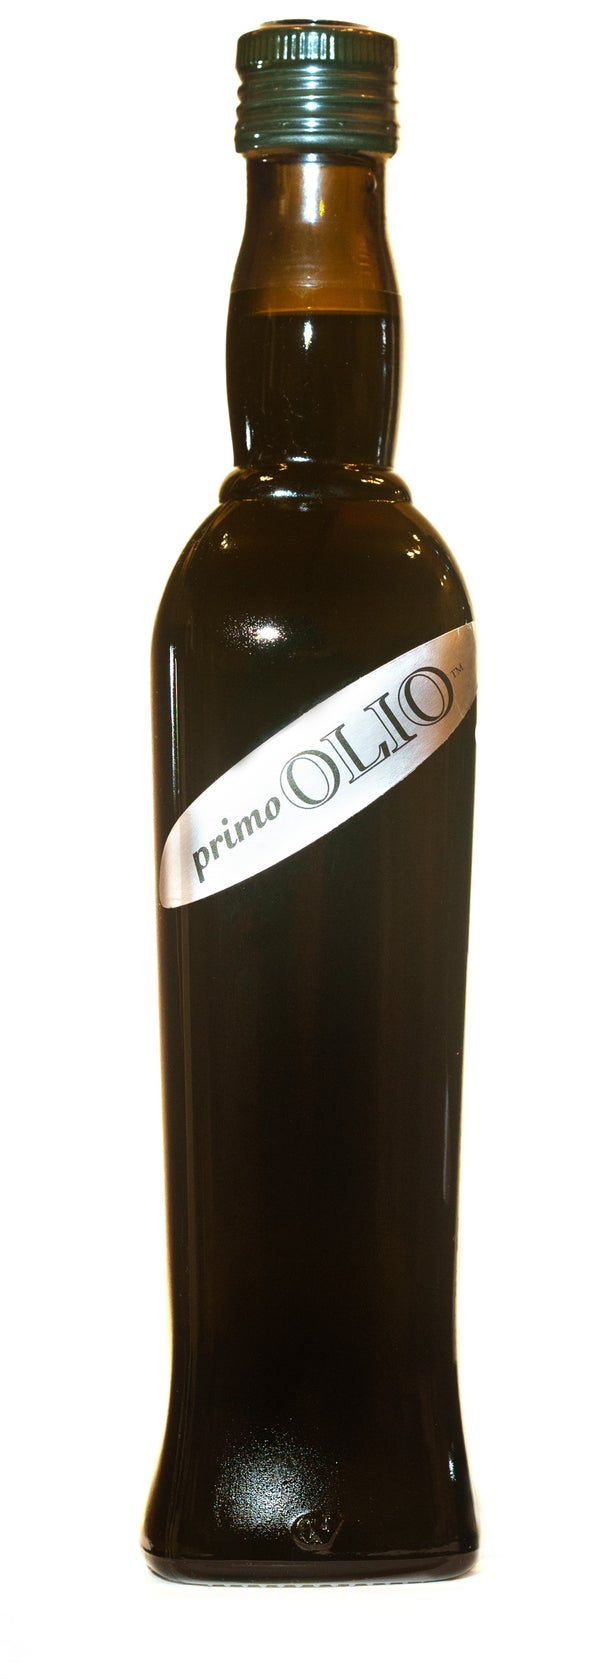 Image of Primo Olio 2020 Harvest Certified Organic Extra Virgin Olive Oil 500ml